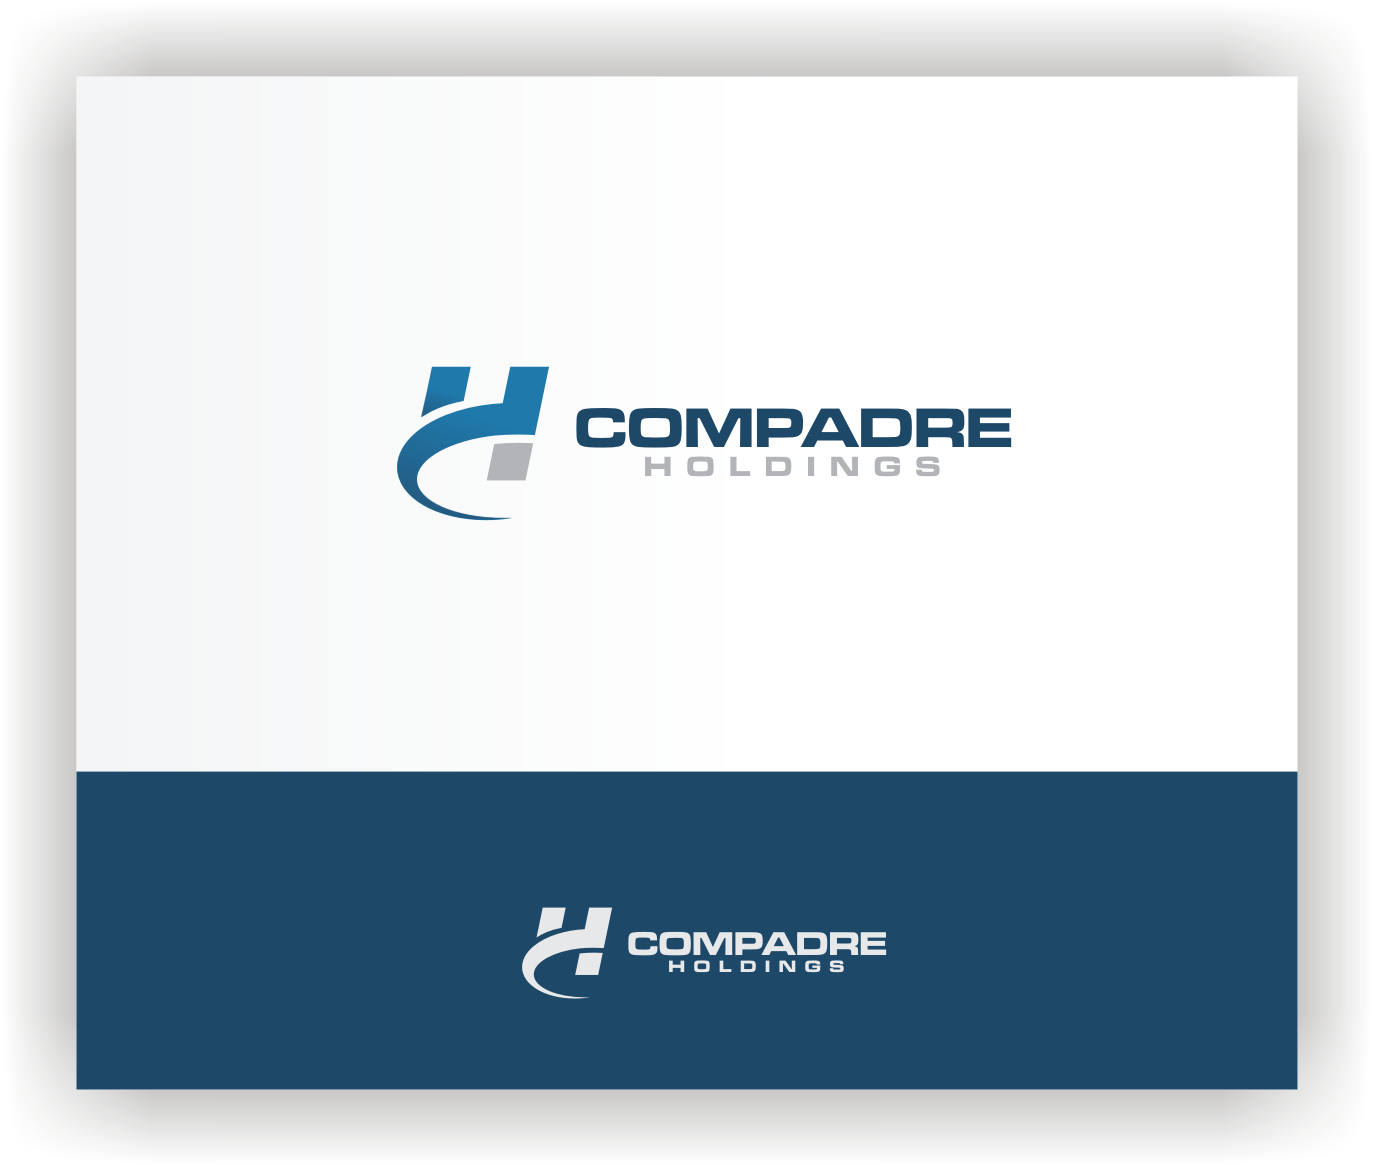 Compadre Holdings needs a new logo